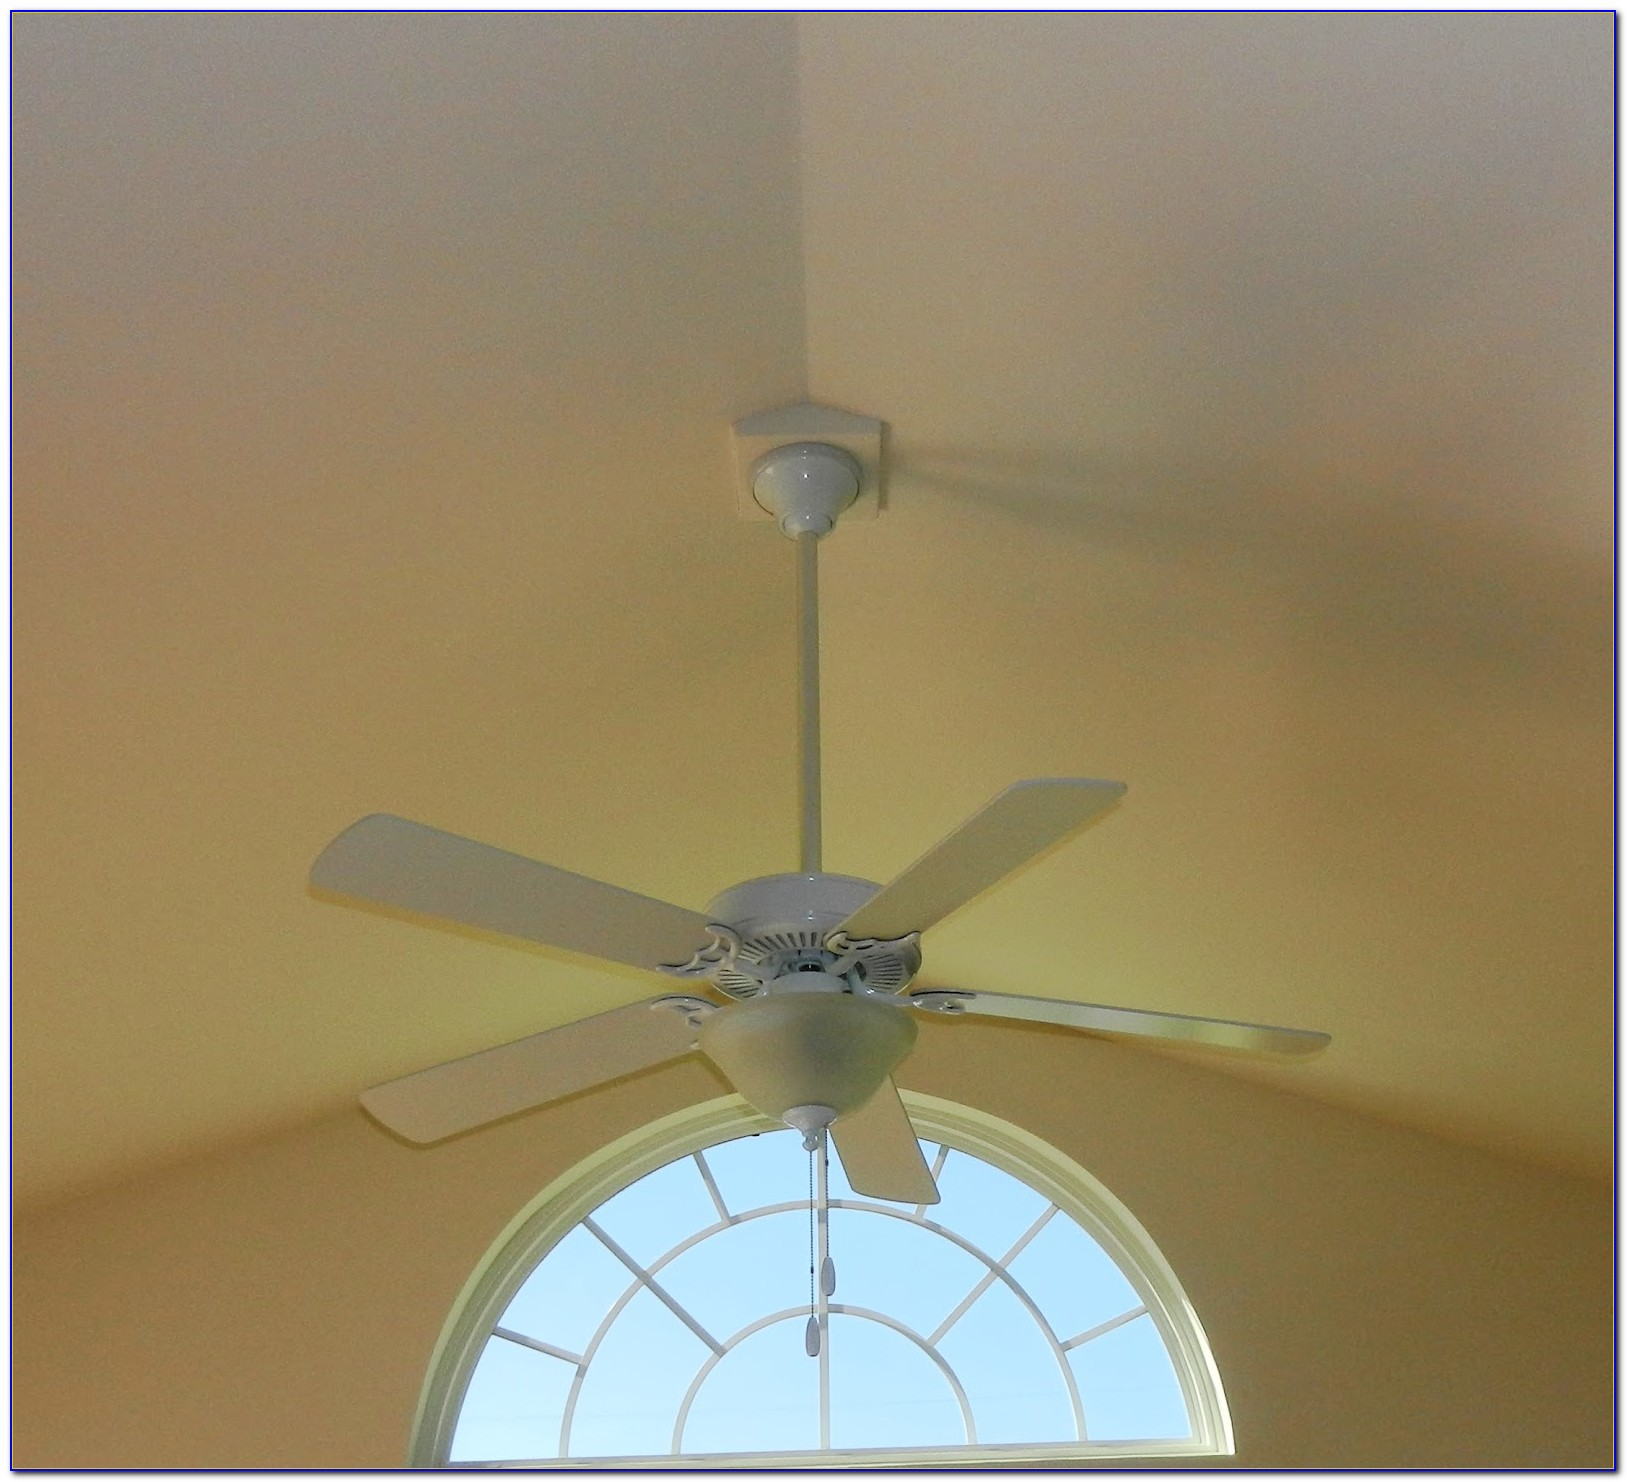 Ceiling Fan Installation Vaulted Ceilings